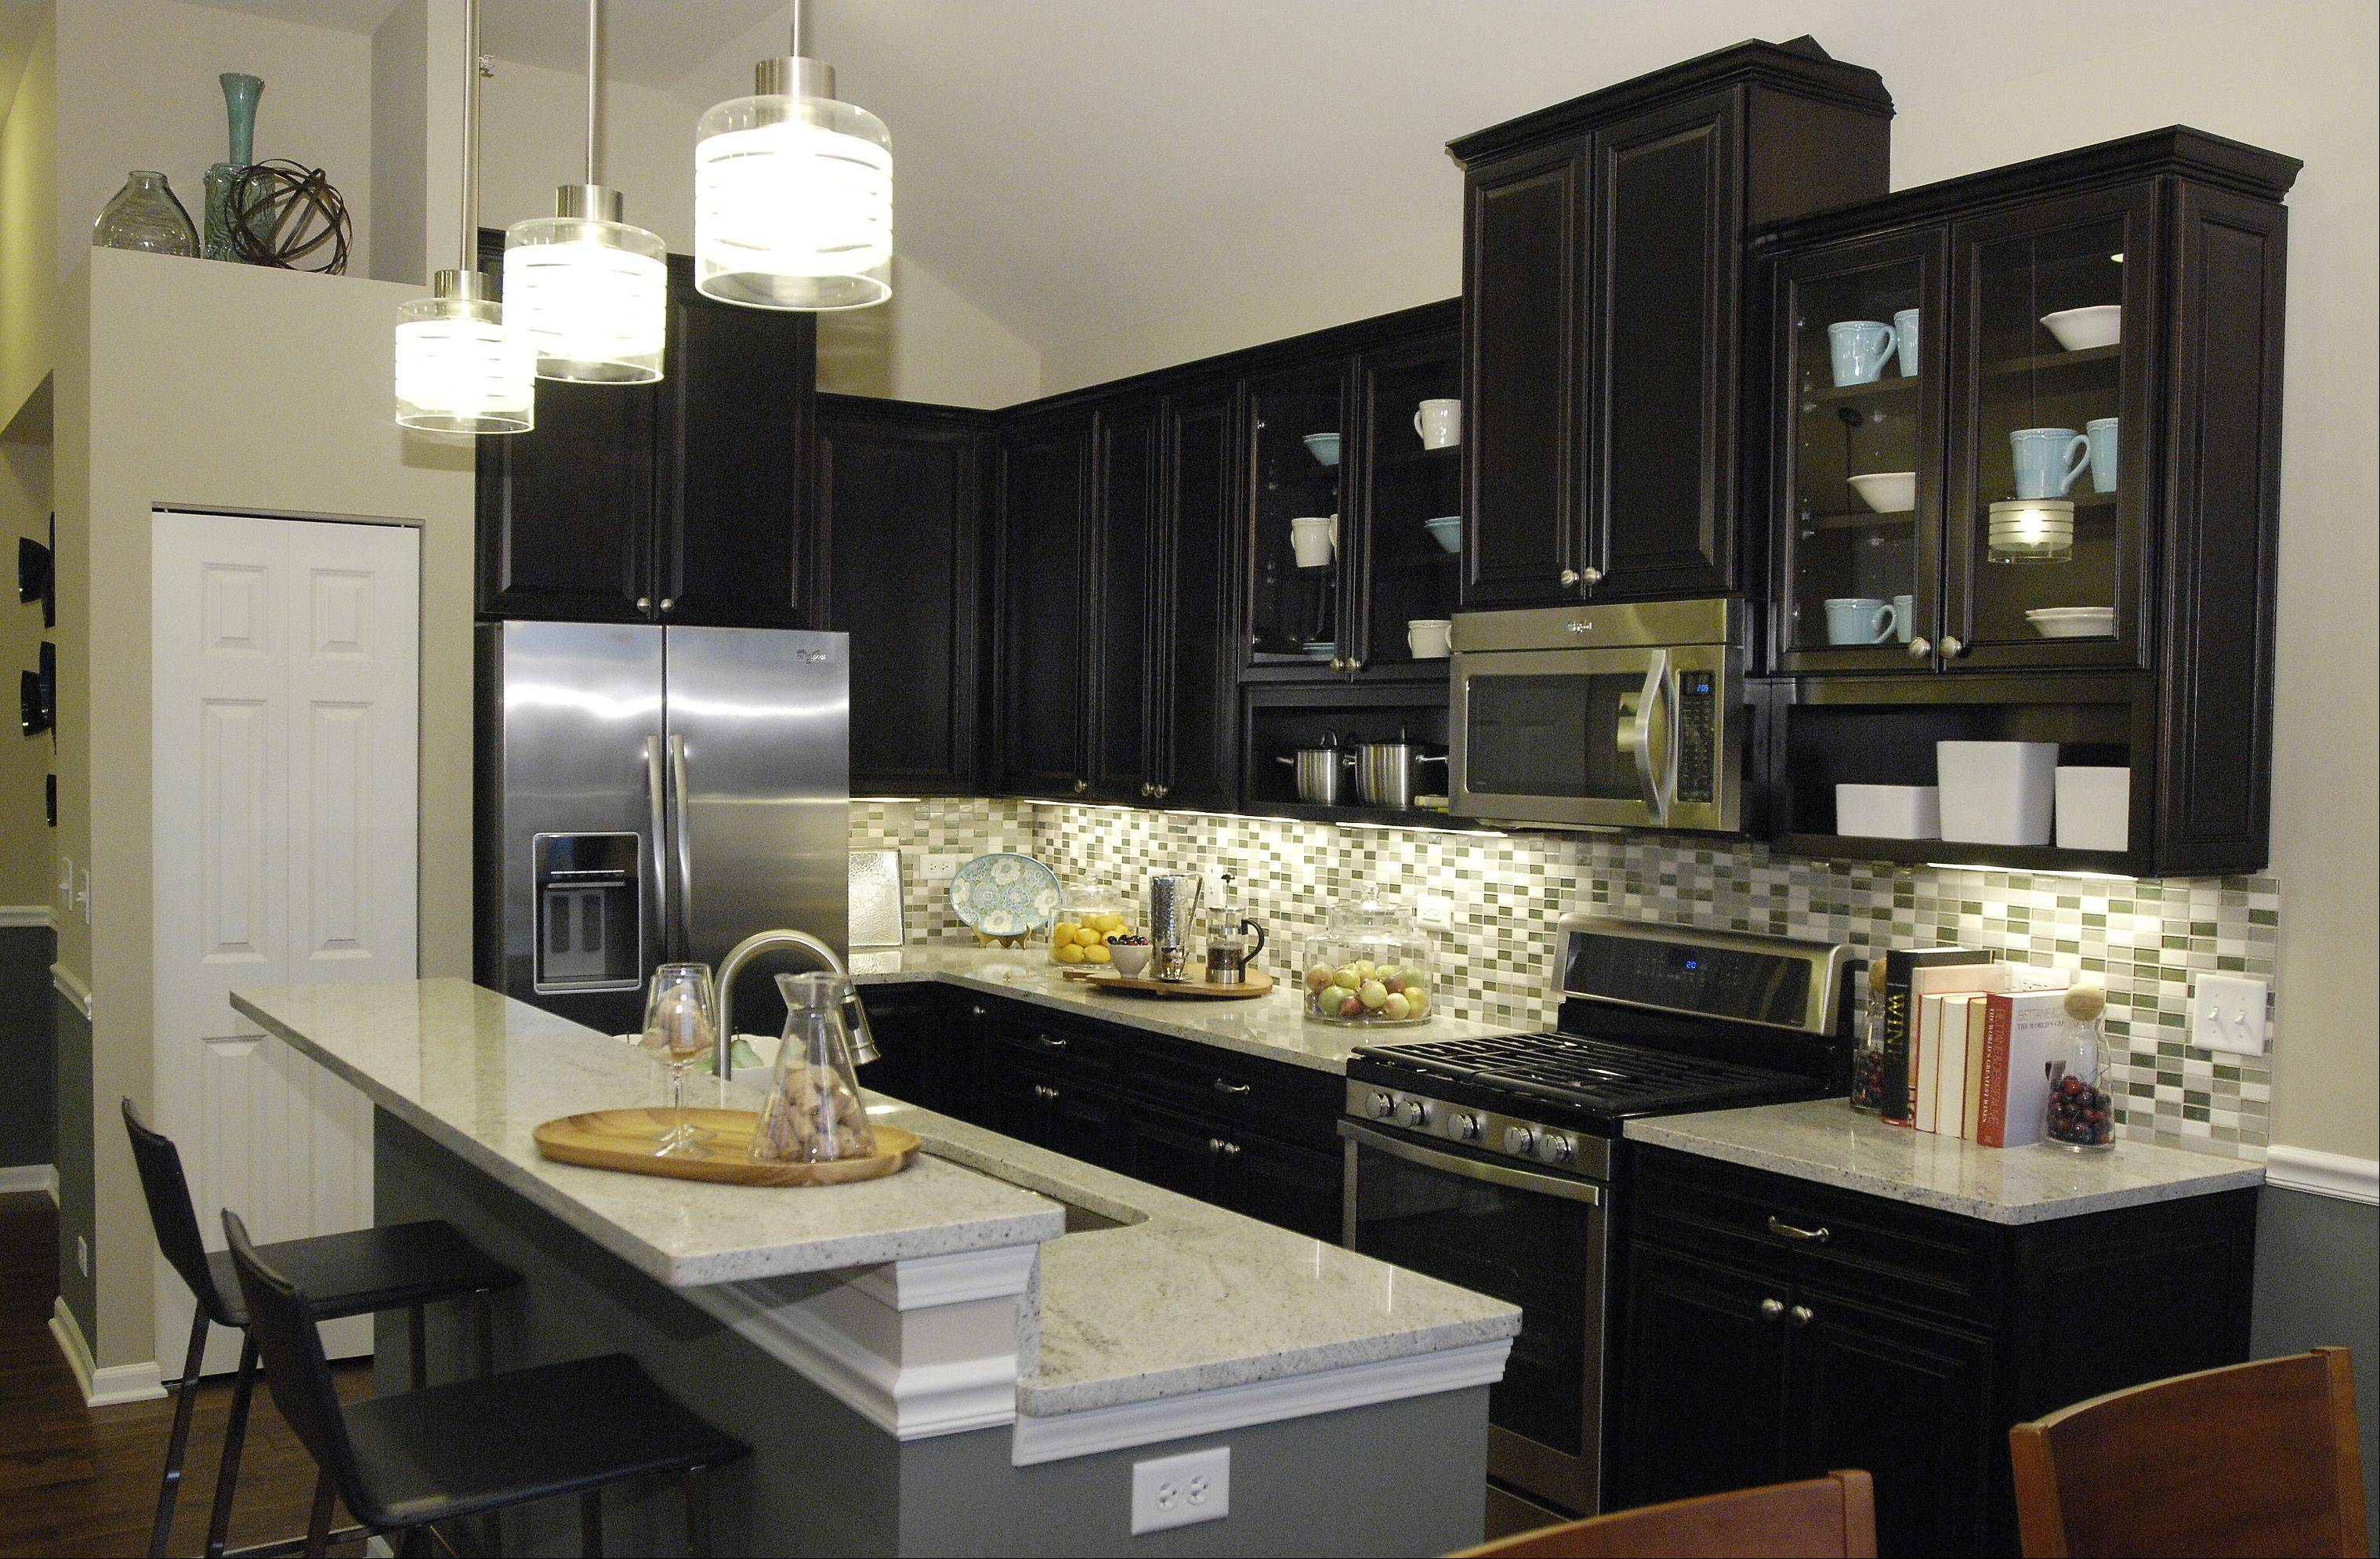 The Diversey model's kitchen sparkles with stainless steel appliances, granite countertops and mosaic tiles that create a decorative backsplash.